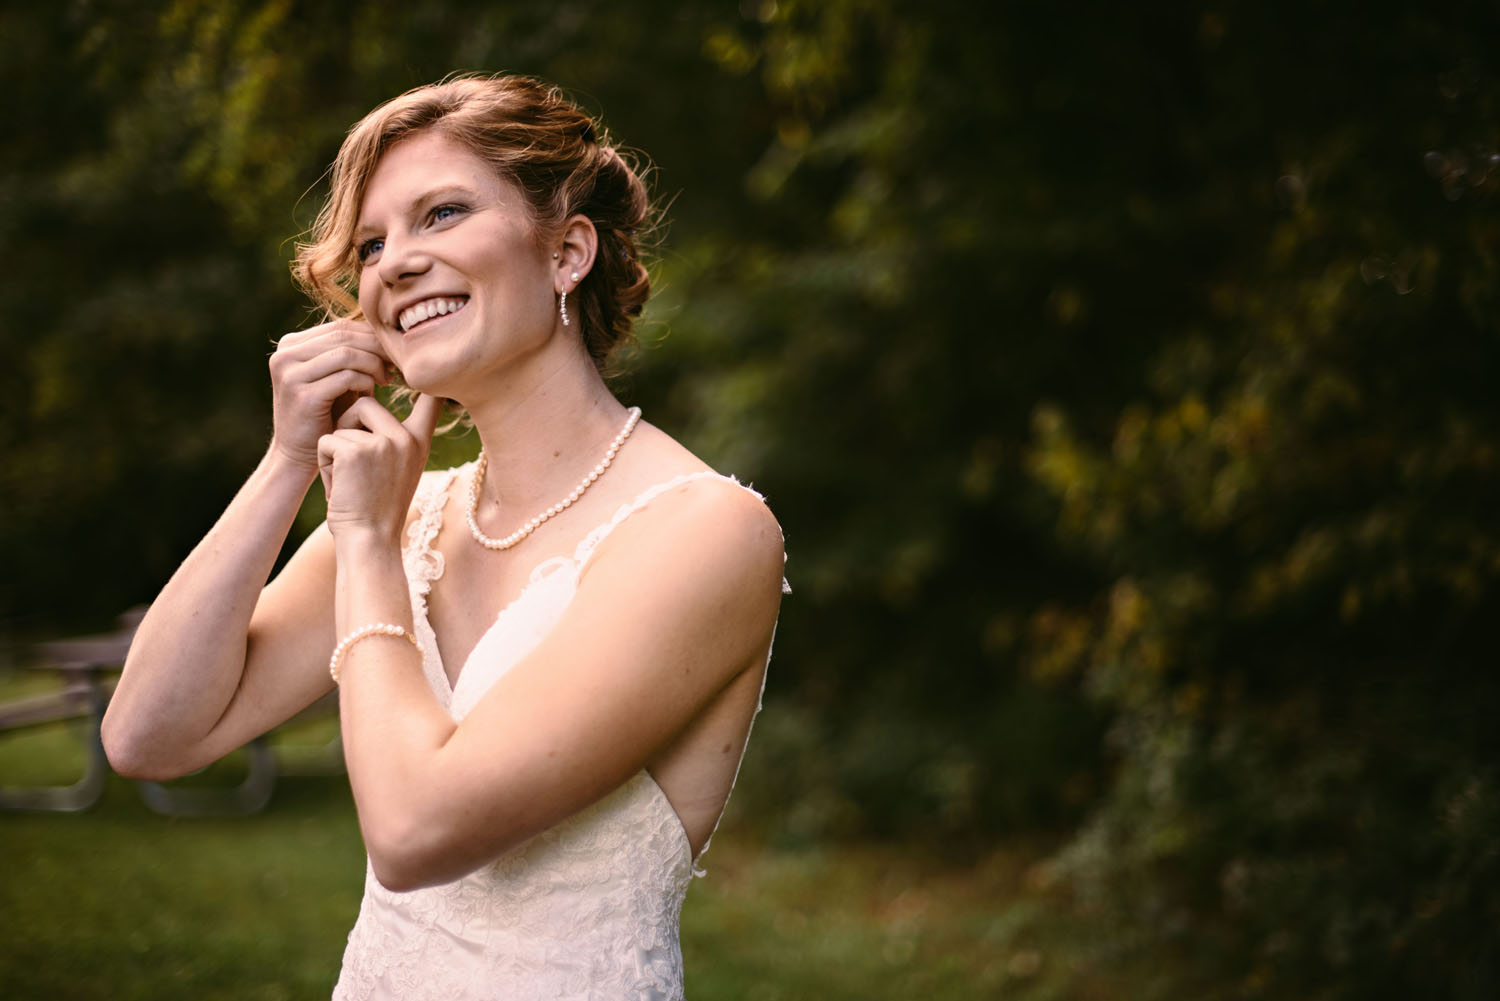 bride-getting-ready-photography-minnesota.jpg